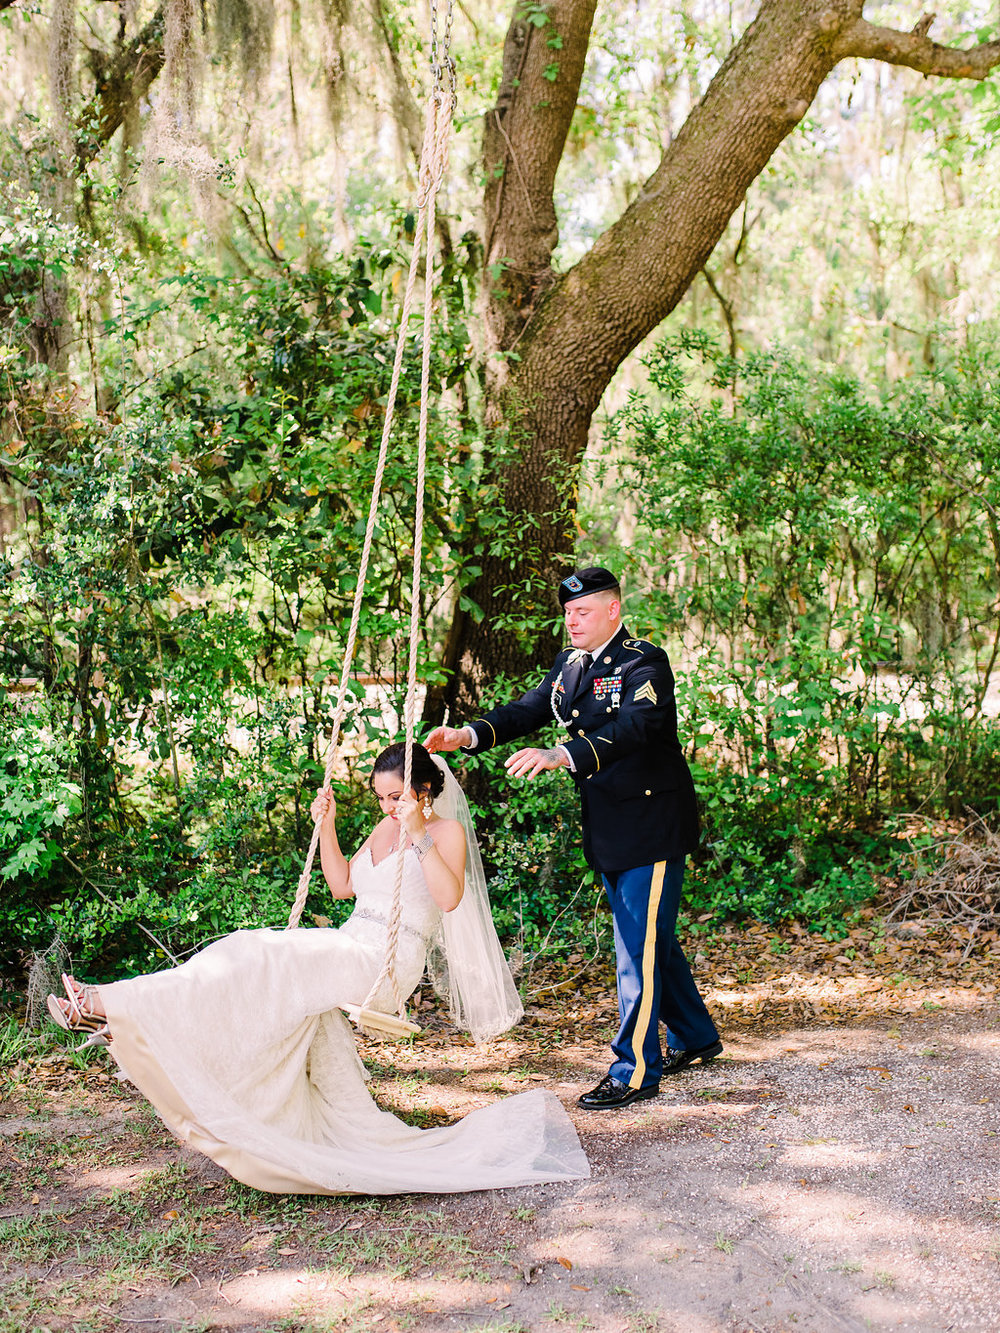 ivory-and-beau-bridal-boutique-lipski-surprise-wedding-5d-photography-military-wedding-savannah-savannah-military-bride-surprise-wedding-14.jpg